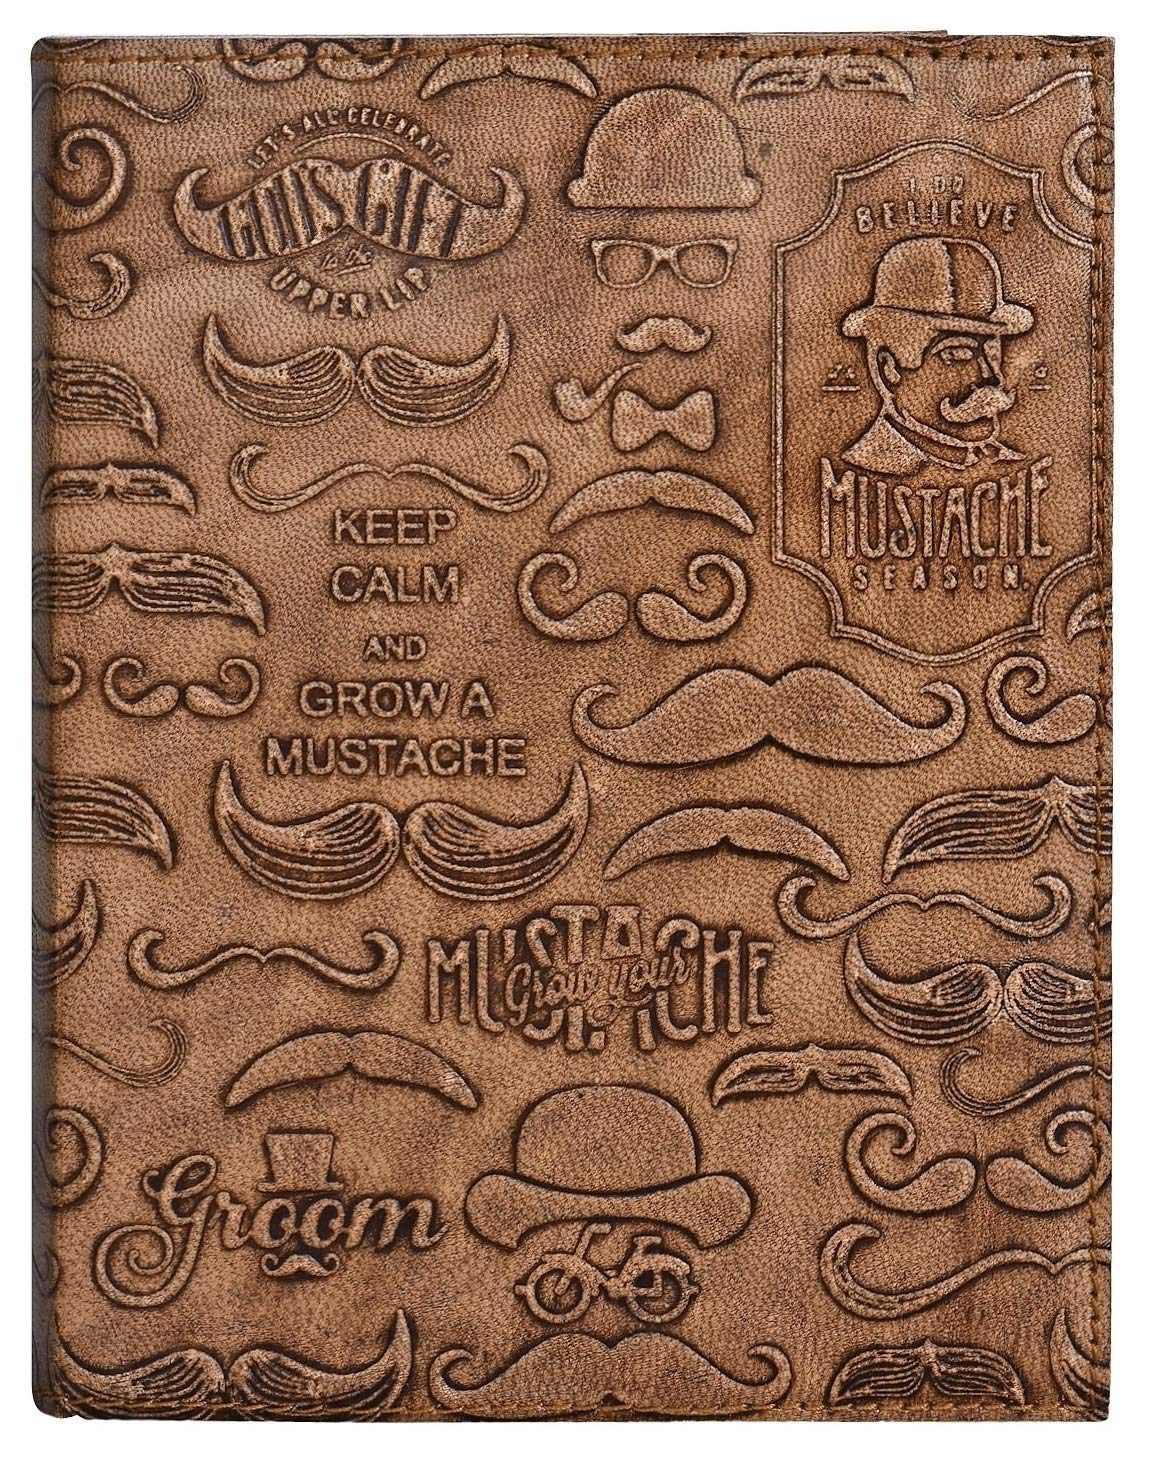 Leather Journal for Men - Grow Your Mustache Notebook Diary - Five Minute Journal for Travelers, Music Lovers & Professional